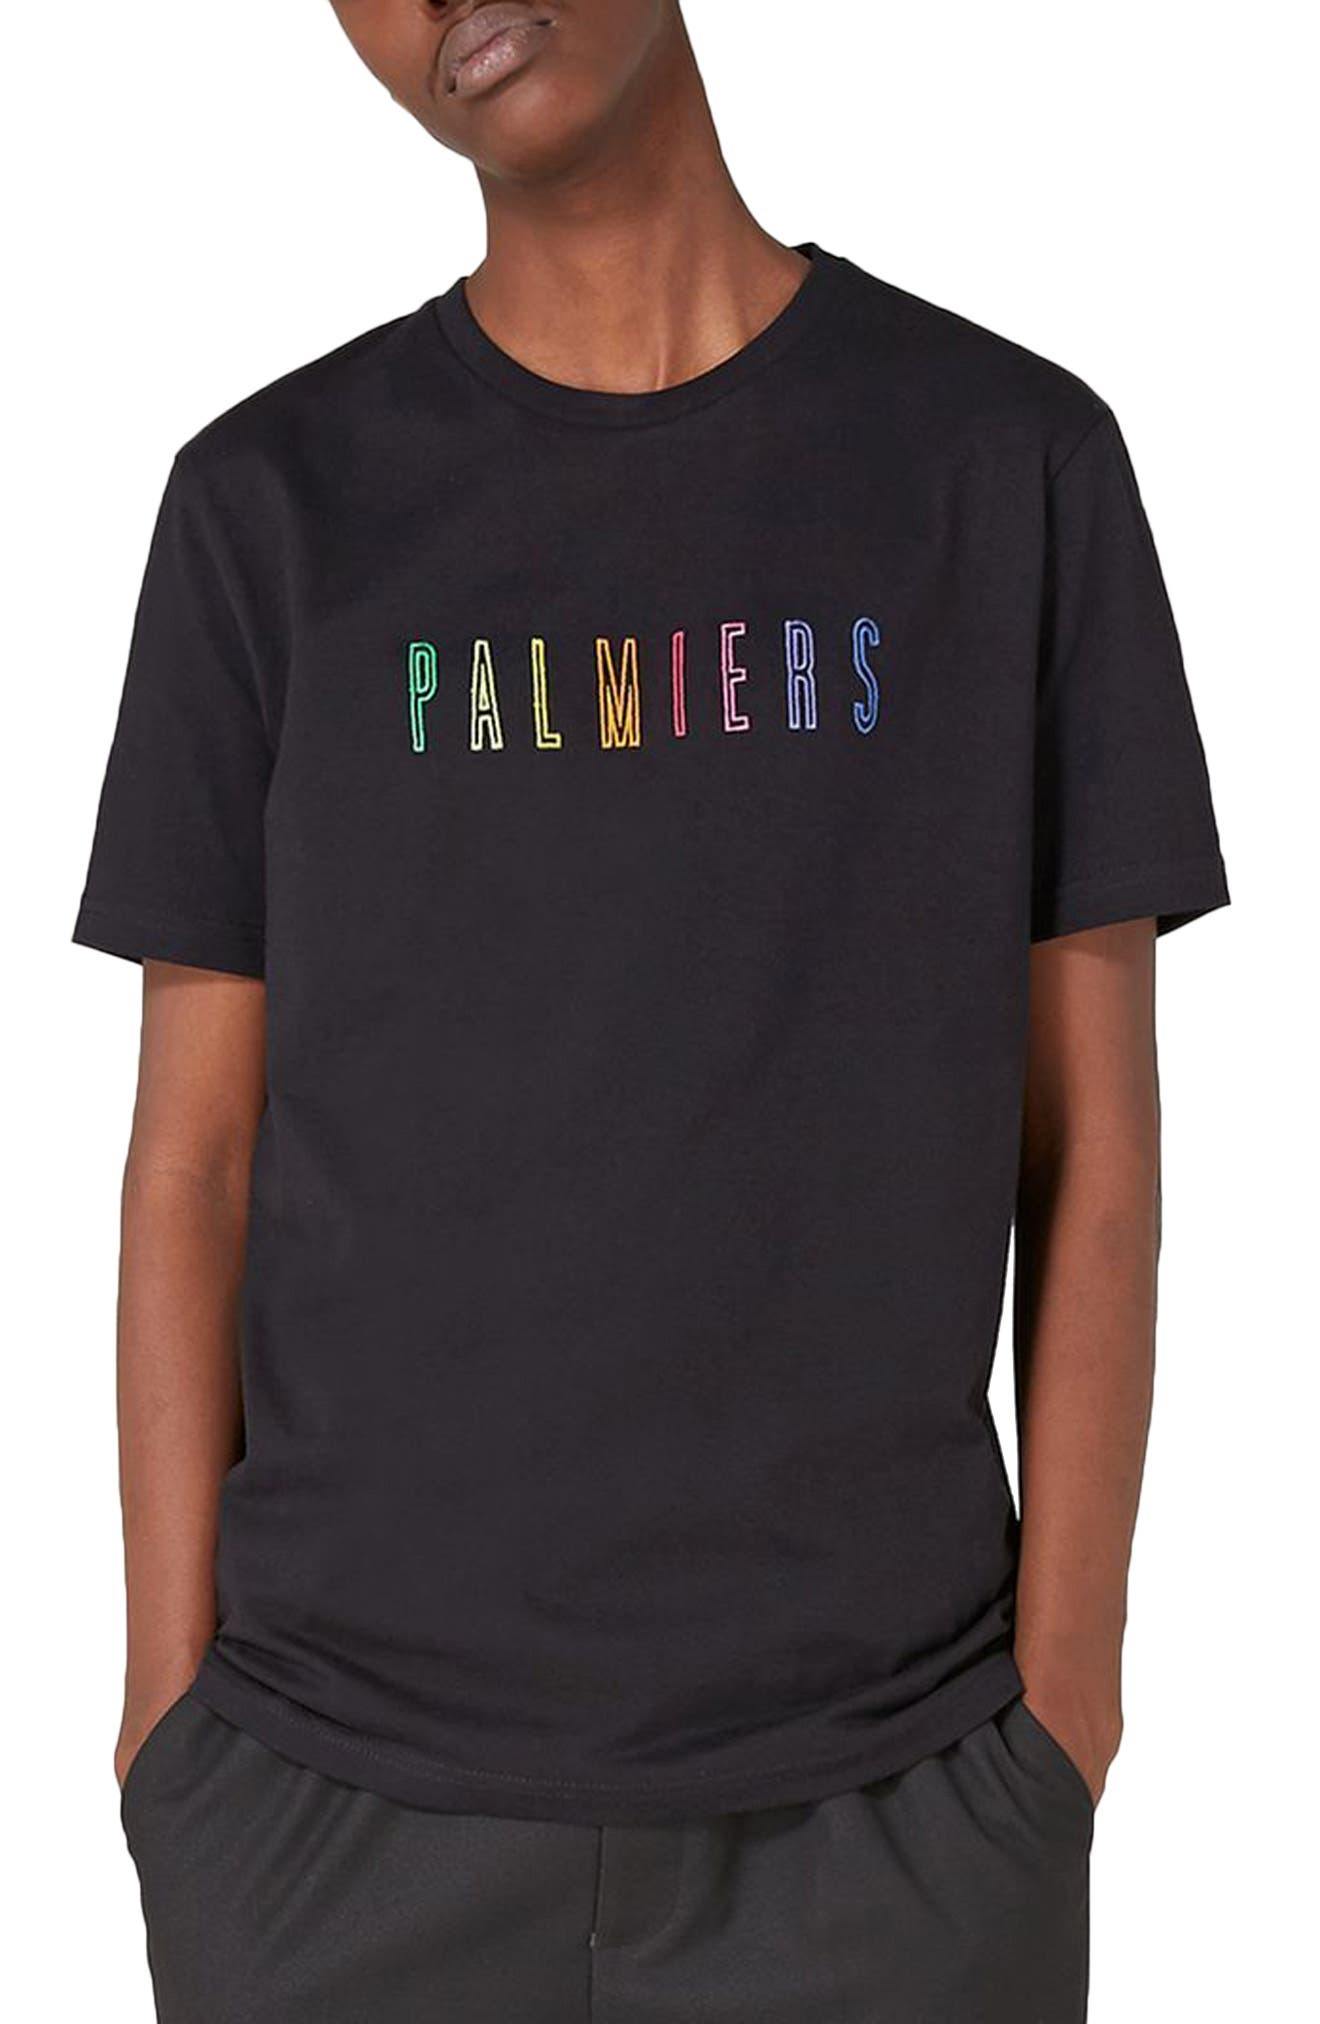 Alternate Image 1 Selected - Topman Palmiers Embroidered T-Shirt